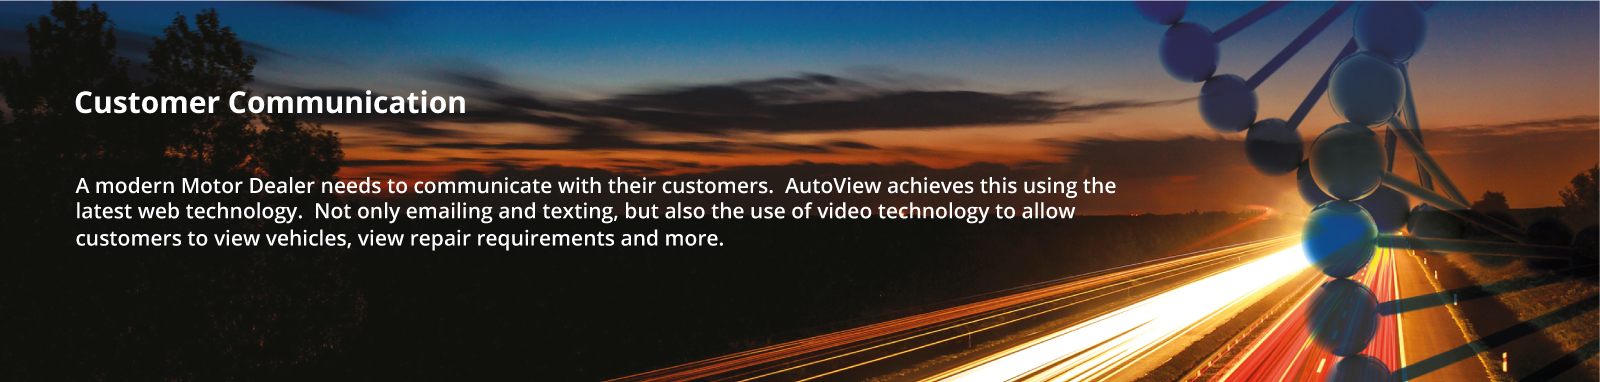 AutoView-slider-(4)-Customer